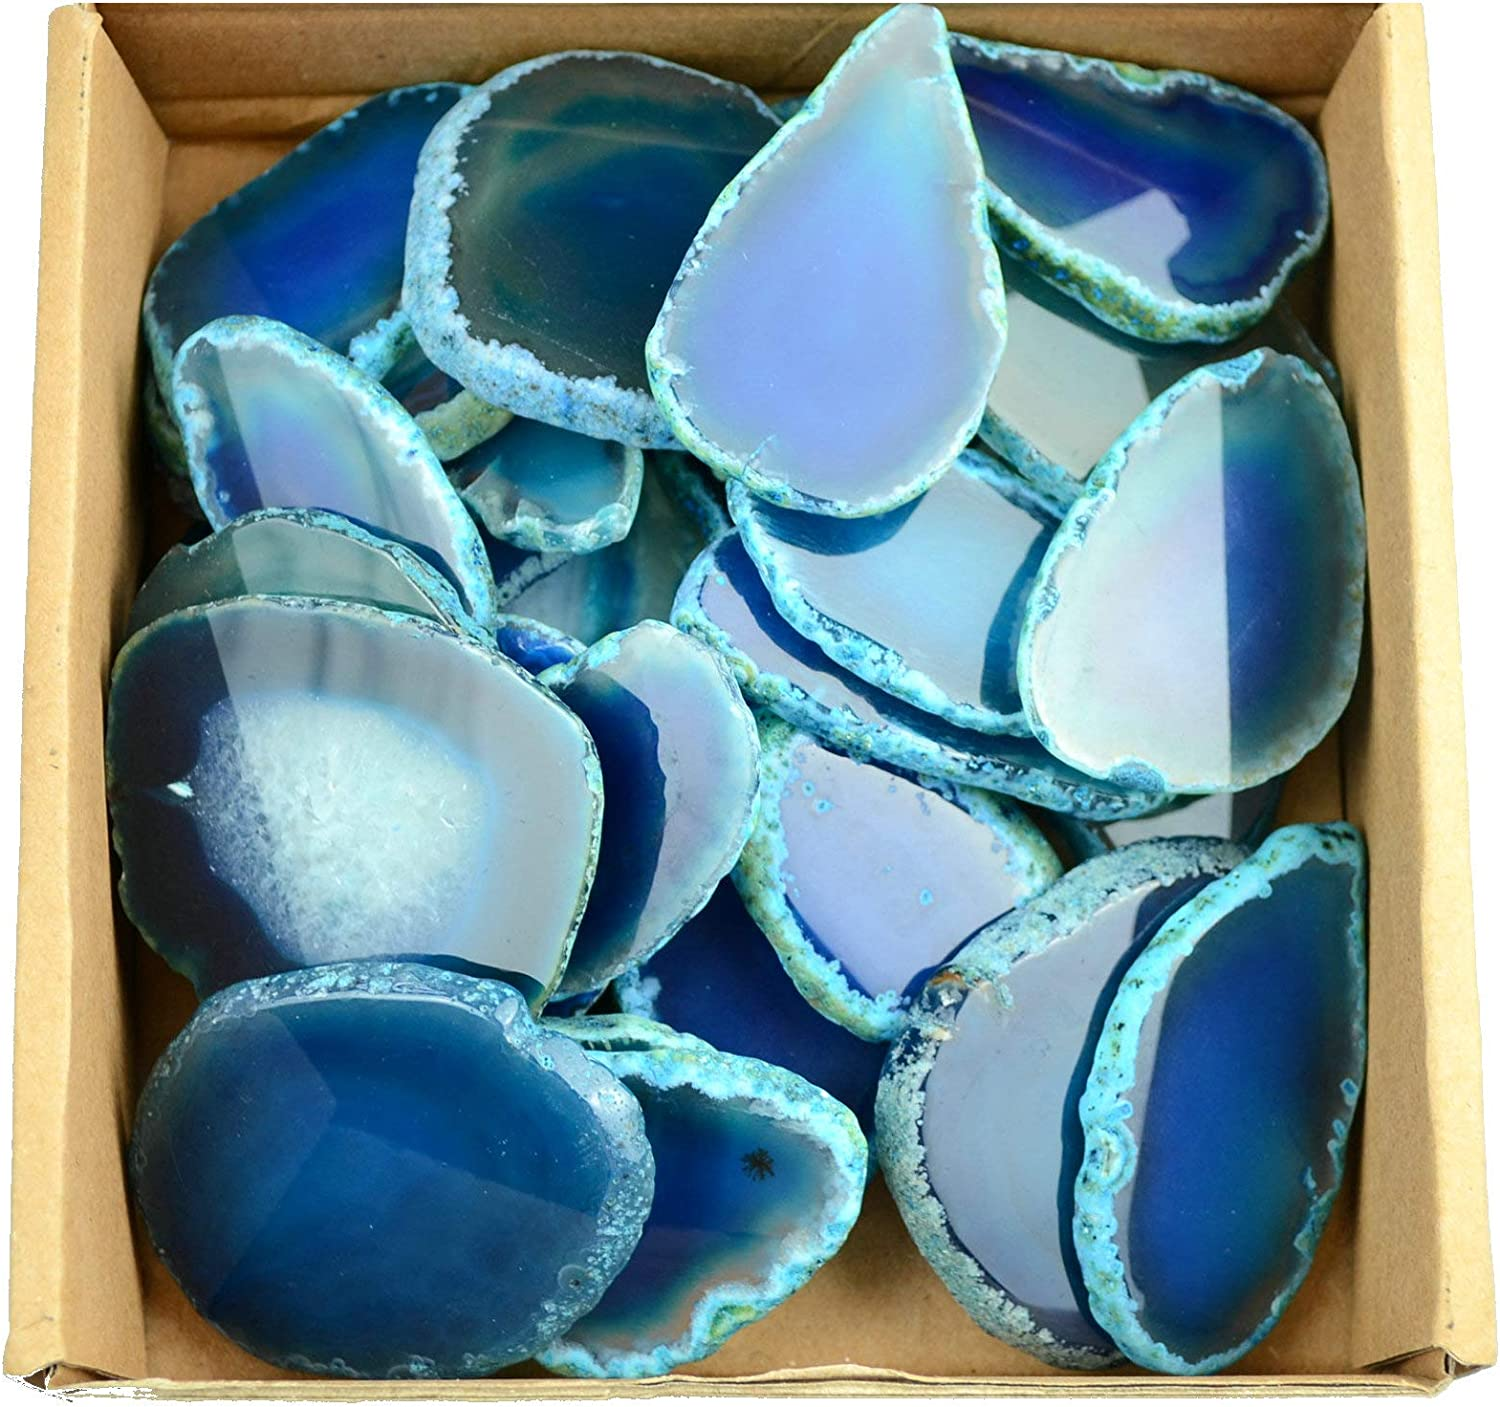 FHNP367 30 Pieces Agate Slices Stone Slab in Length Direct sale of manufacturer 2